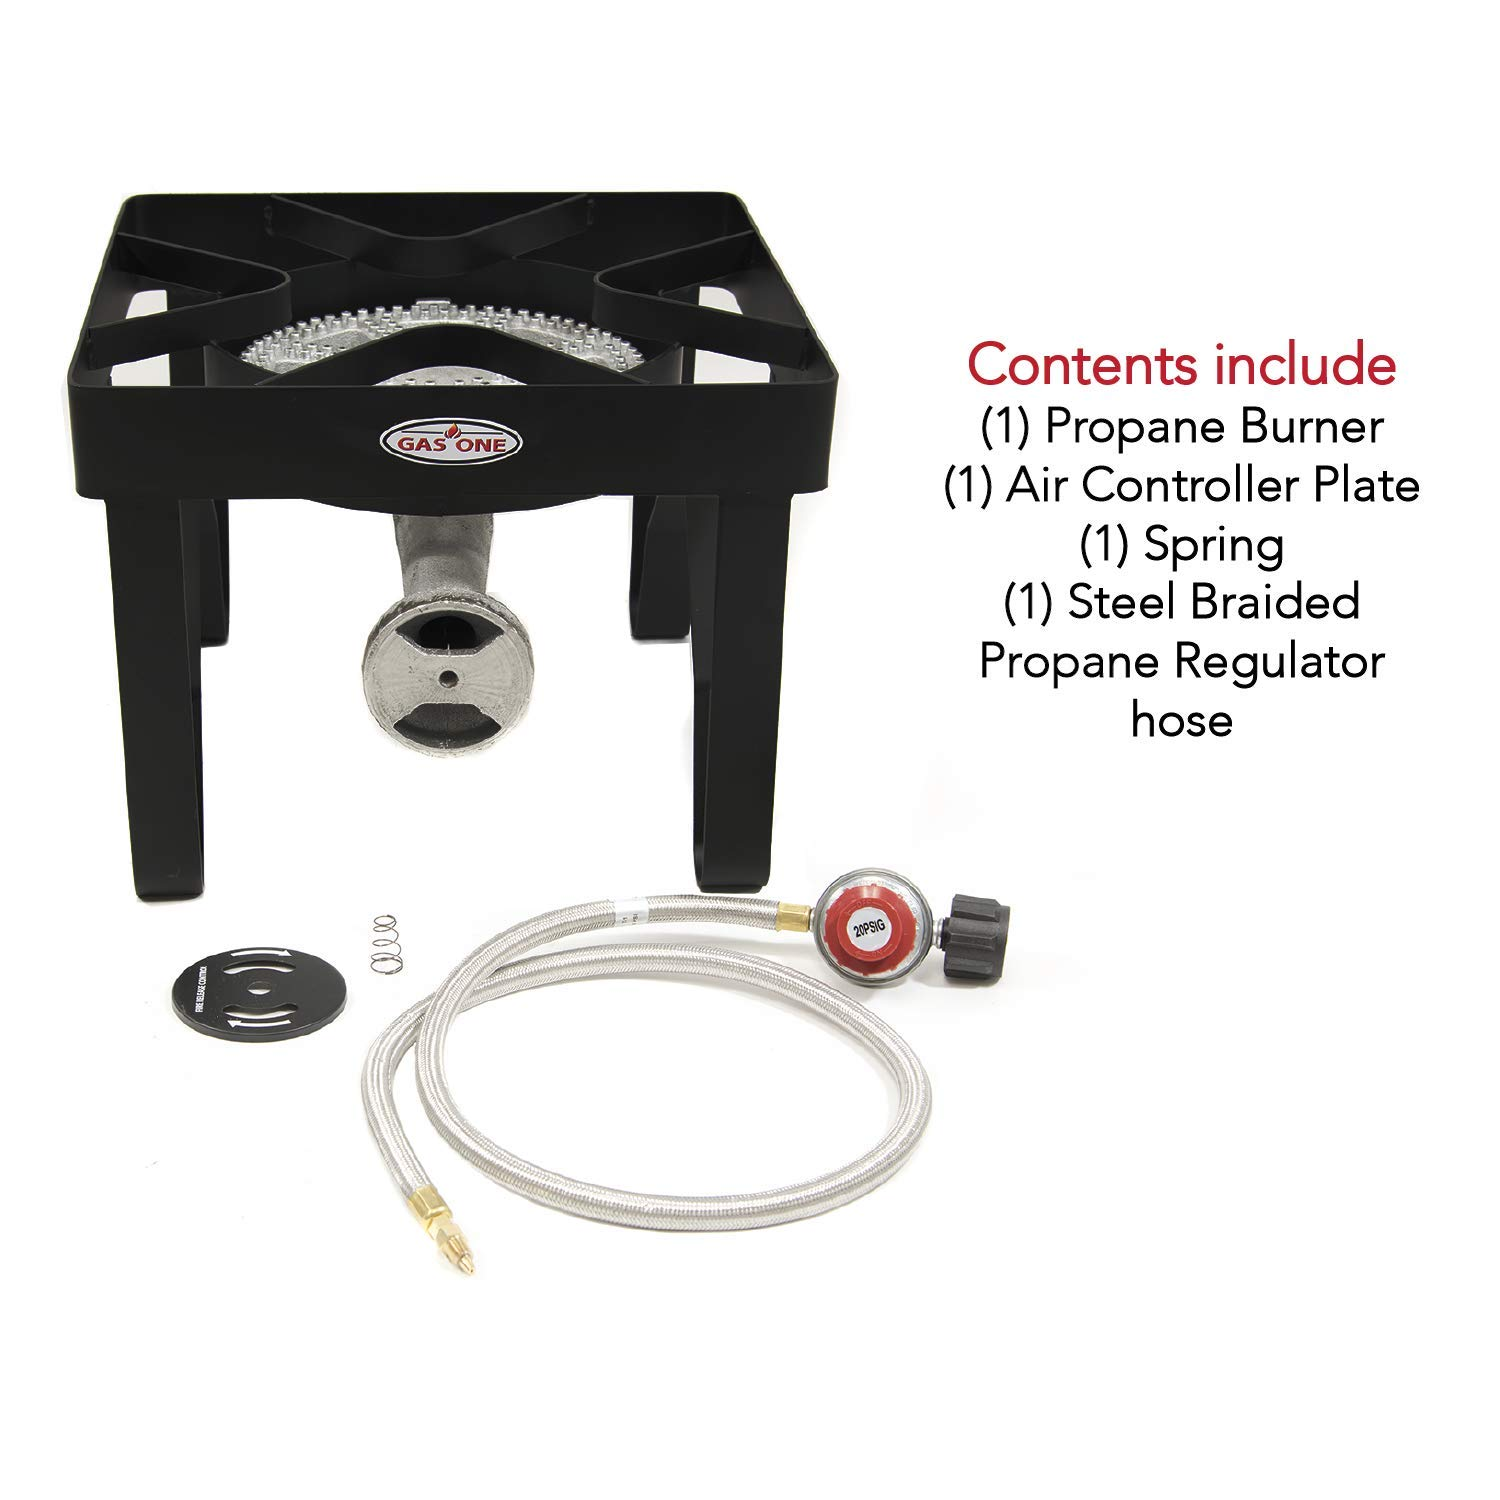 GAS ONE 200,000 BTU Square Heavy Duty Single Burner Outdoor Stove Propane Gas